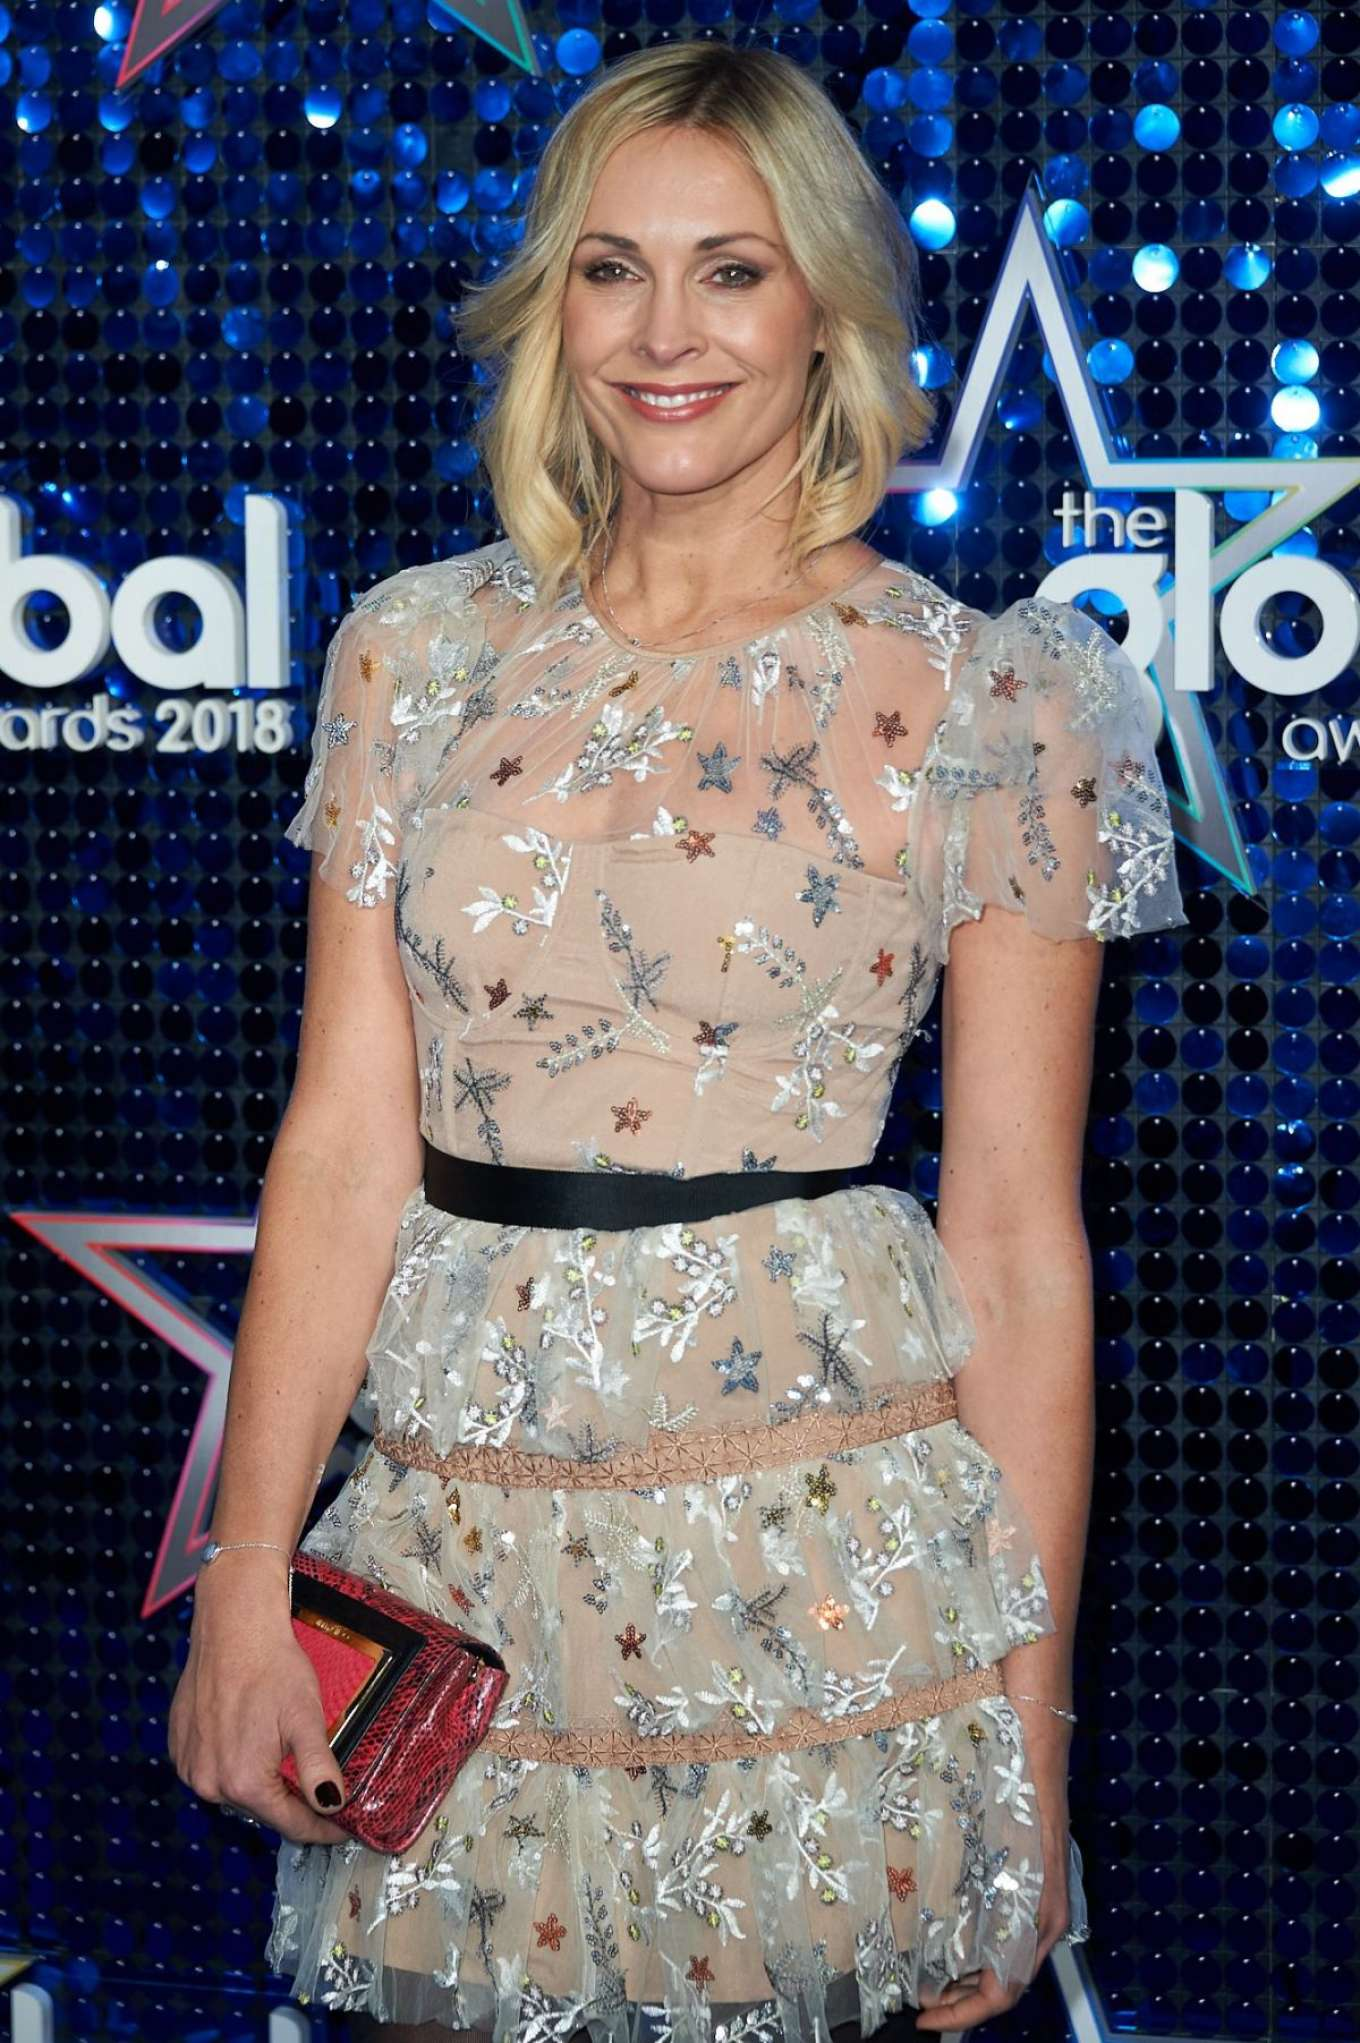 Jenni Falconer 2018 : Jenni Falconer: 2018 Global Awards -01